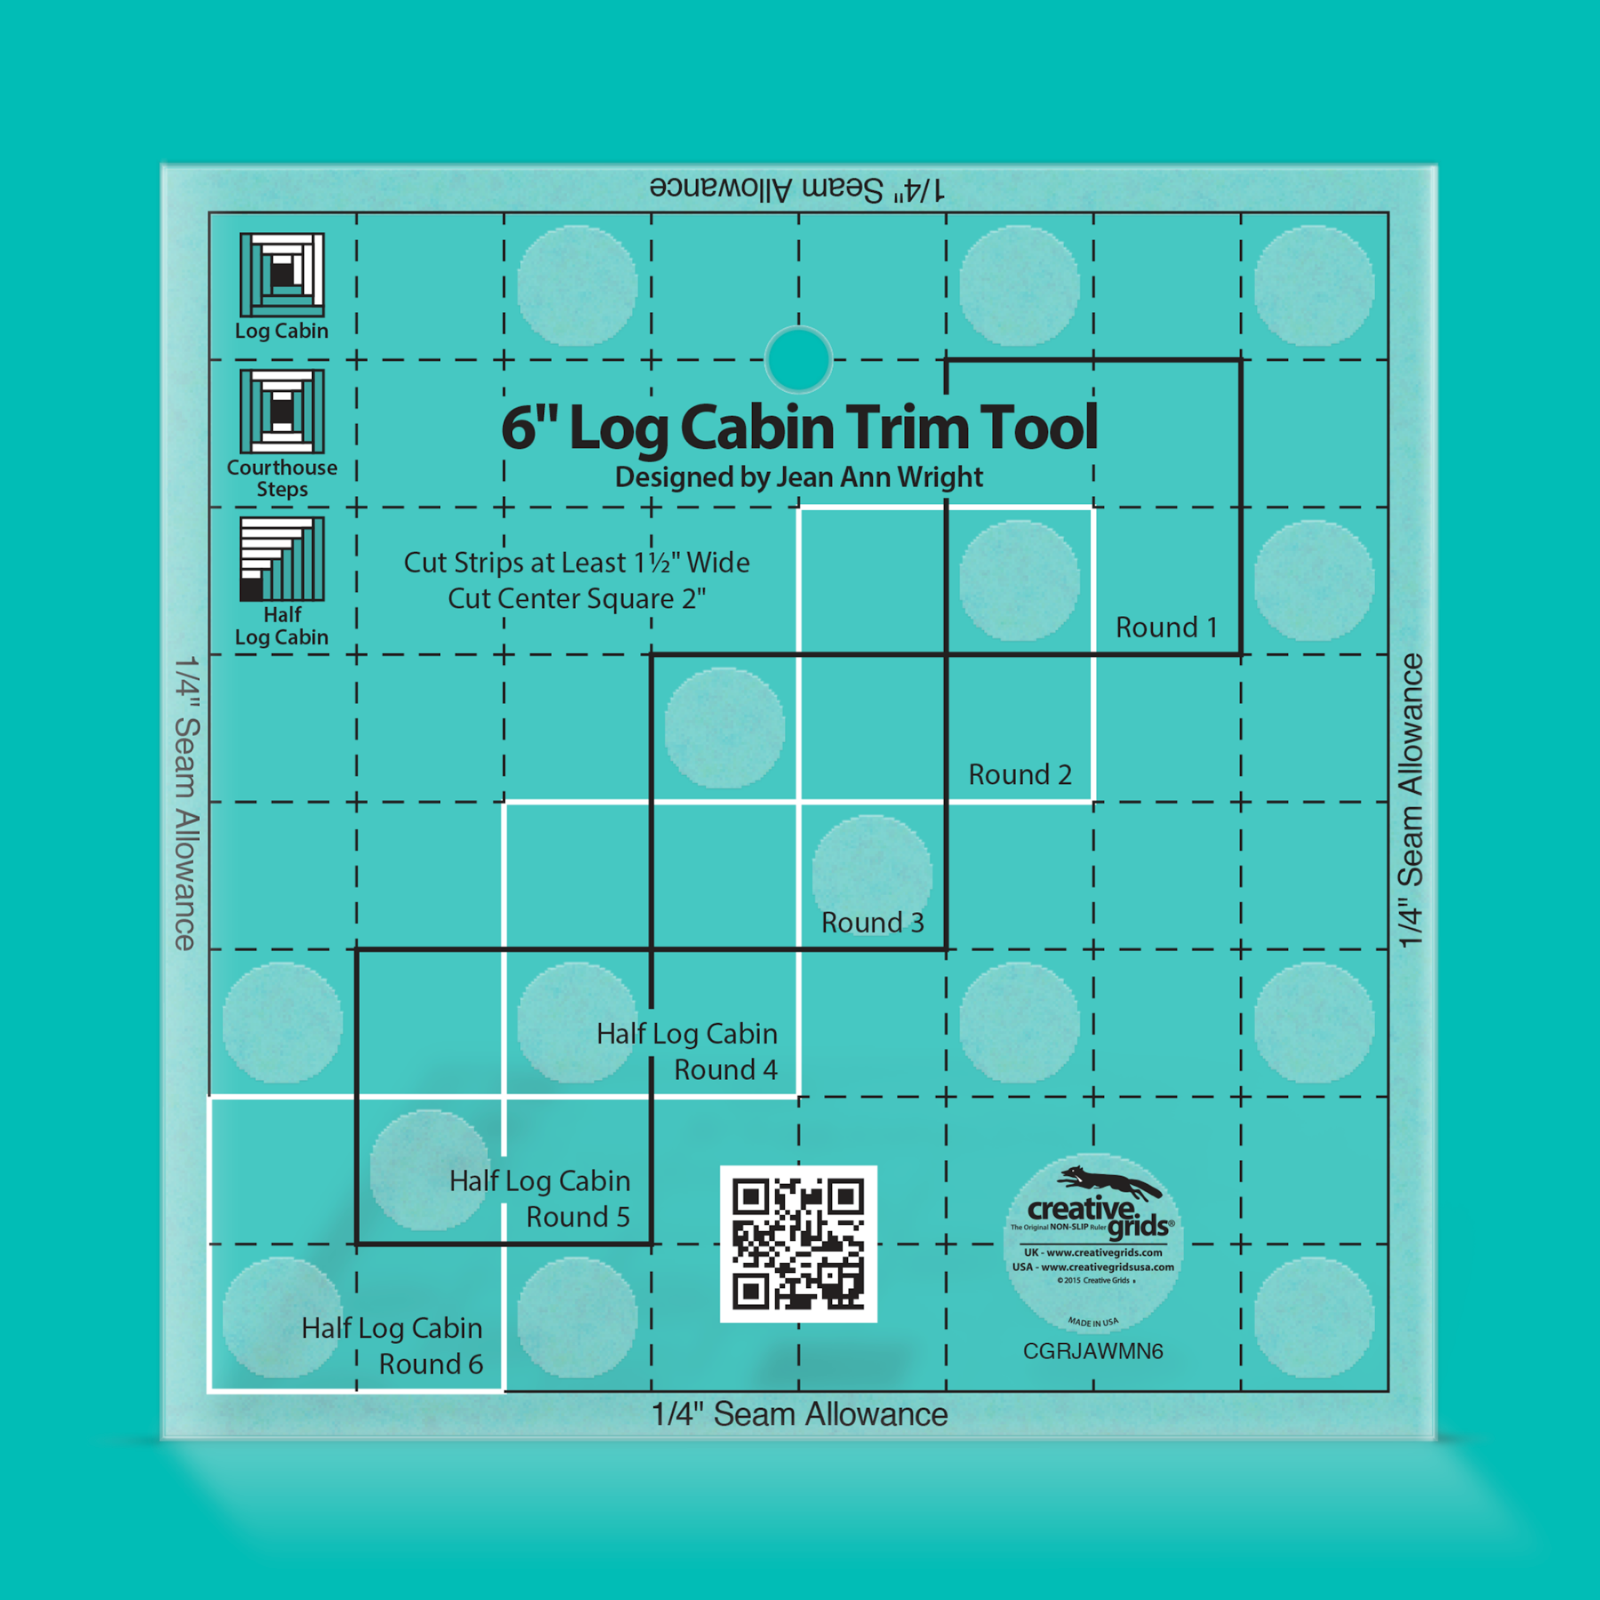 6 Log Cabin Trim Tool